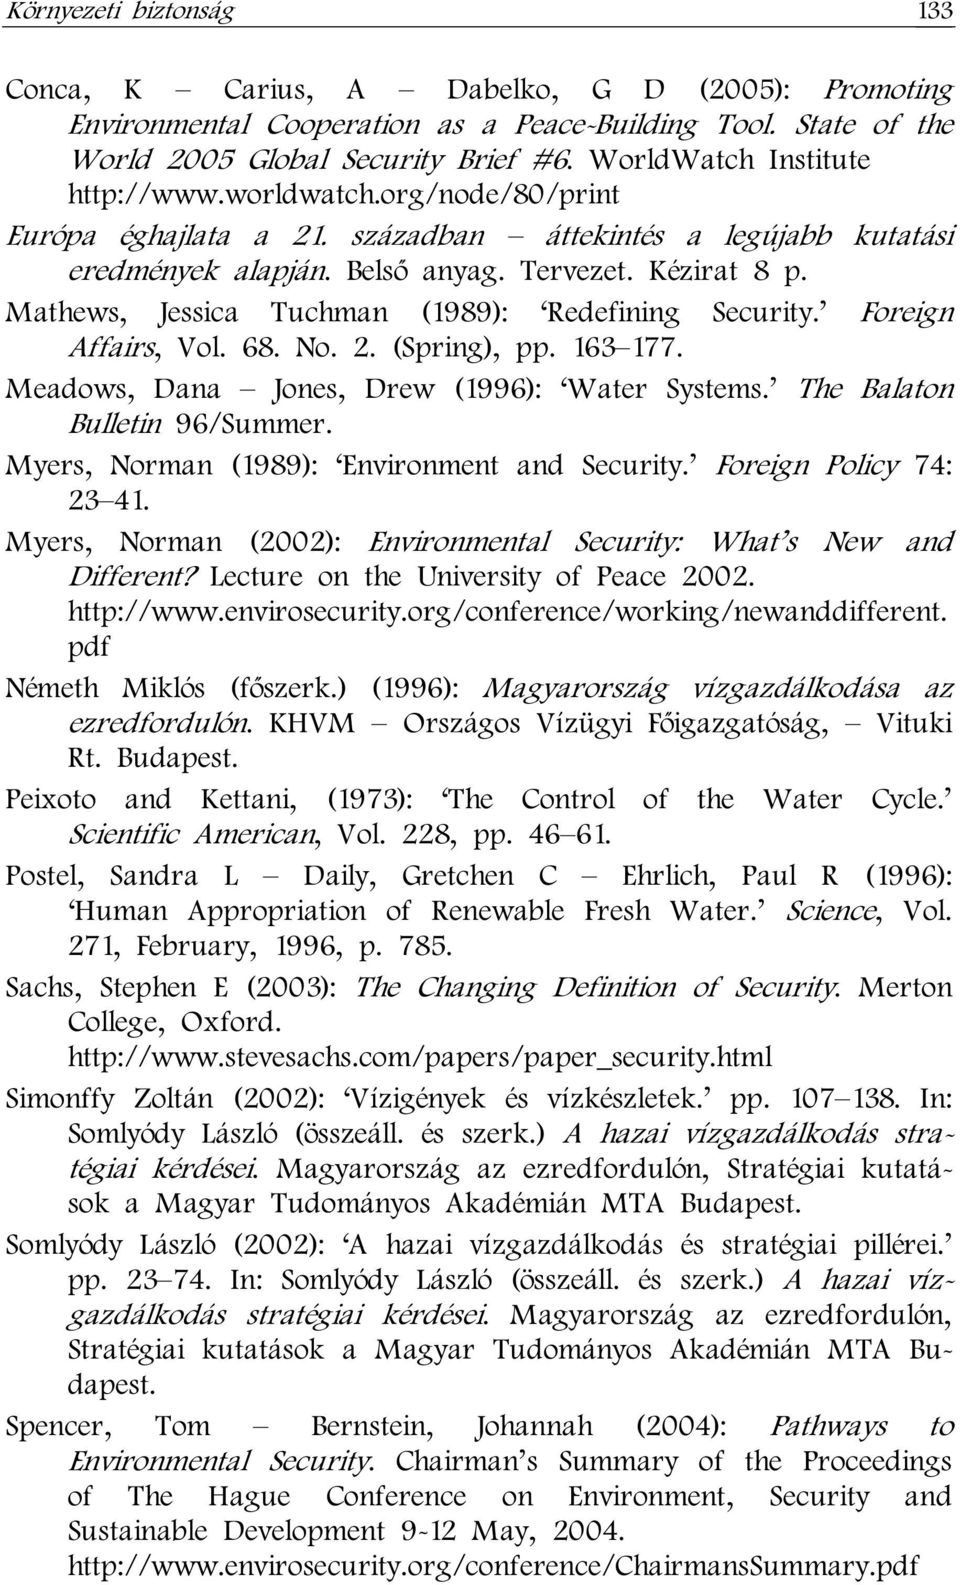 Mathews, Jessica Tuchman (1989): Redefining Security. Foreign Affairs, Vol. 68. No. 2. (Spring), pp. 163 177. Meadows, Dana Jones, Drew (1996): Water Systems. The Balaton Bulletin 96/Summer.